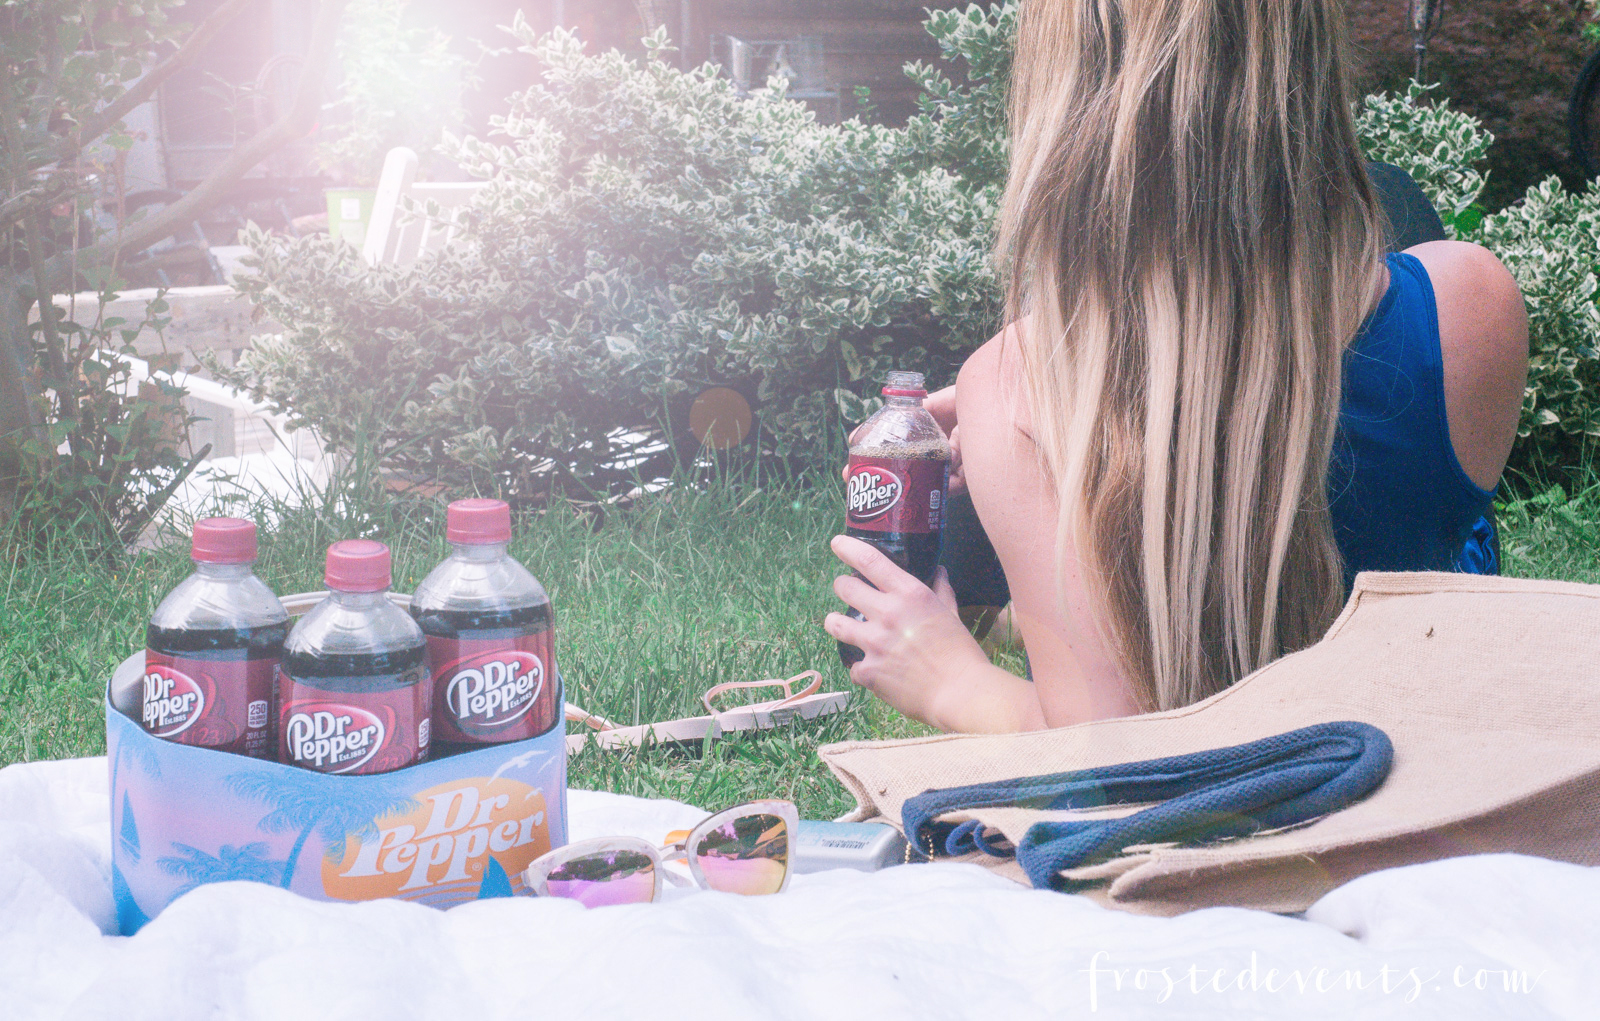 How To Have The Best Summer Ever With Dr Pepper